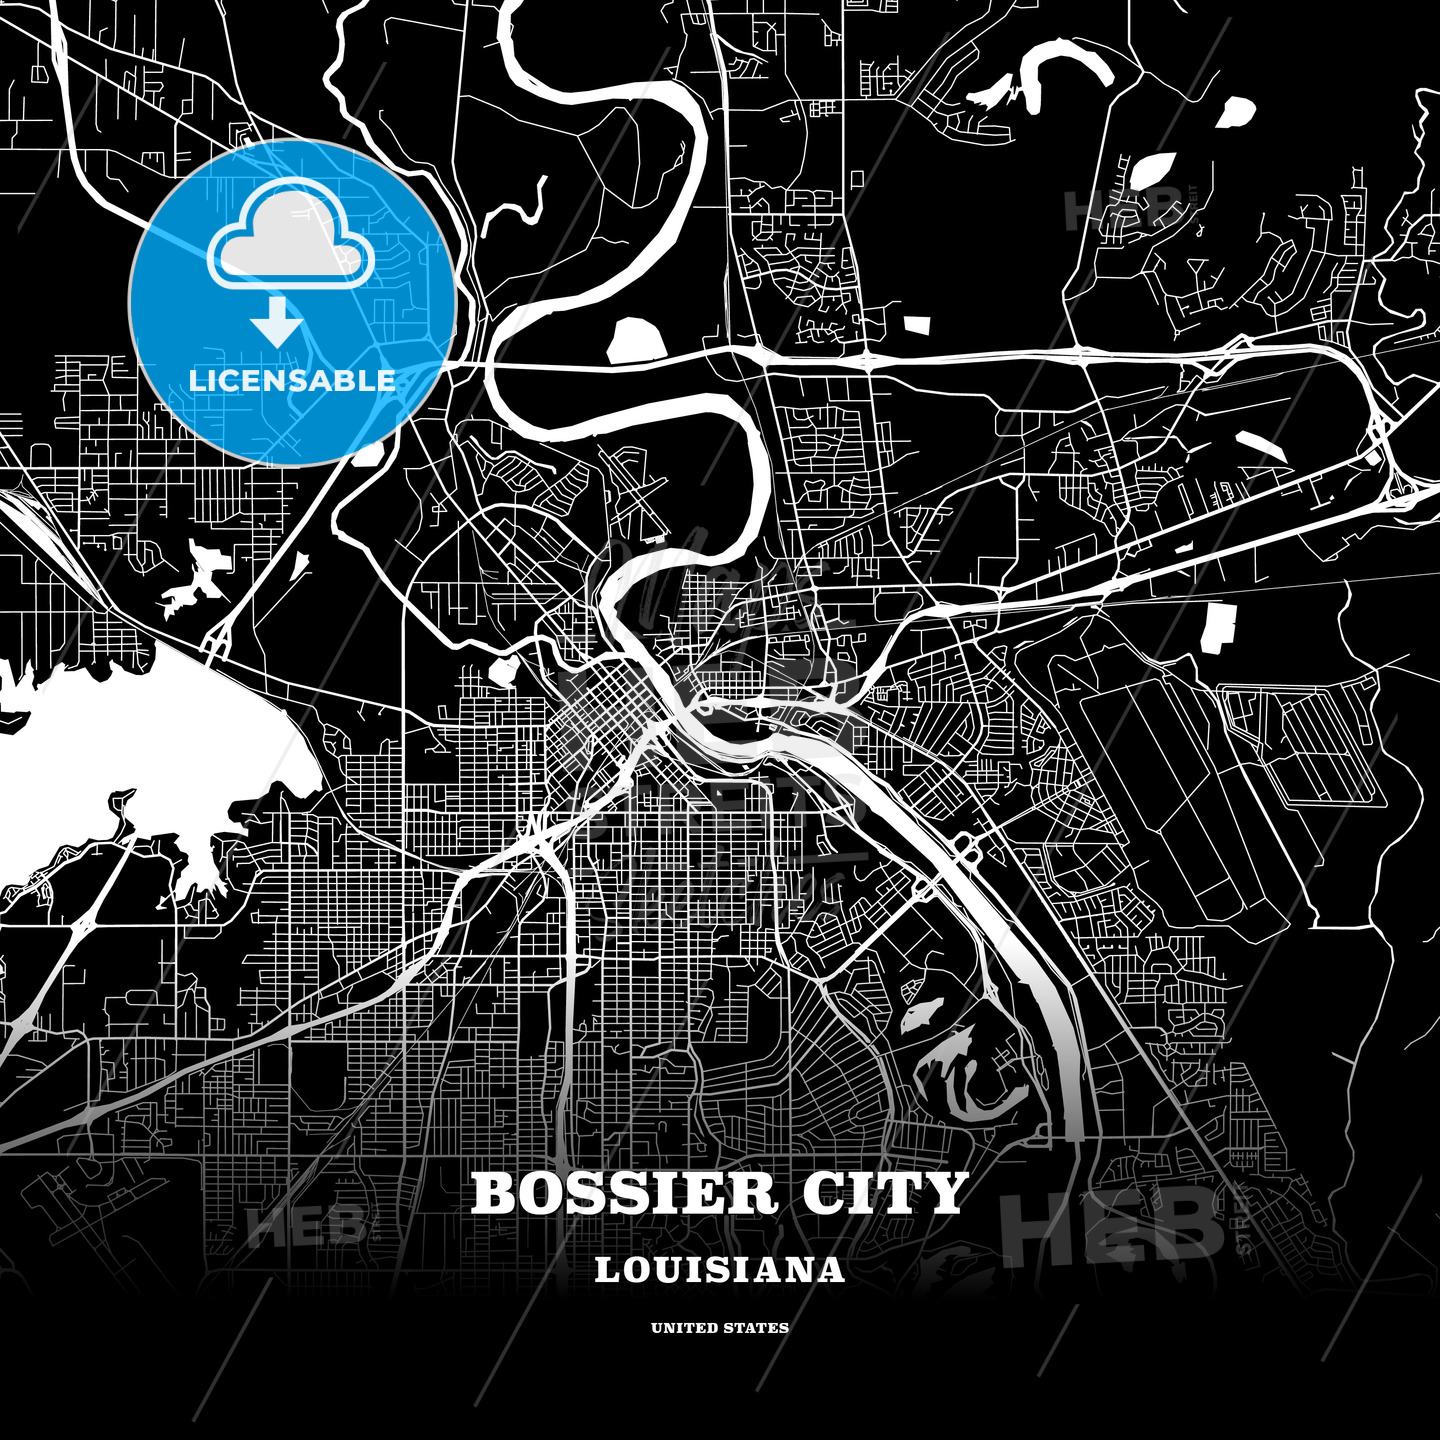 Black map poster template of Bossier City, Louisiana, USA